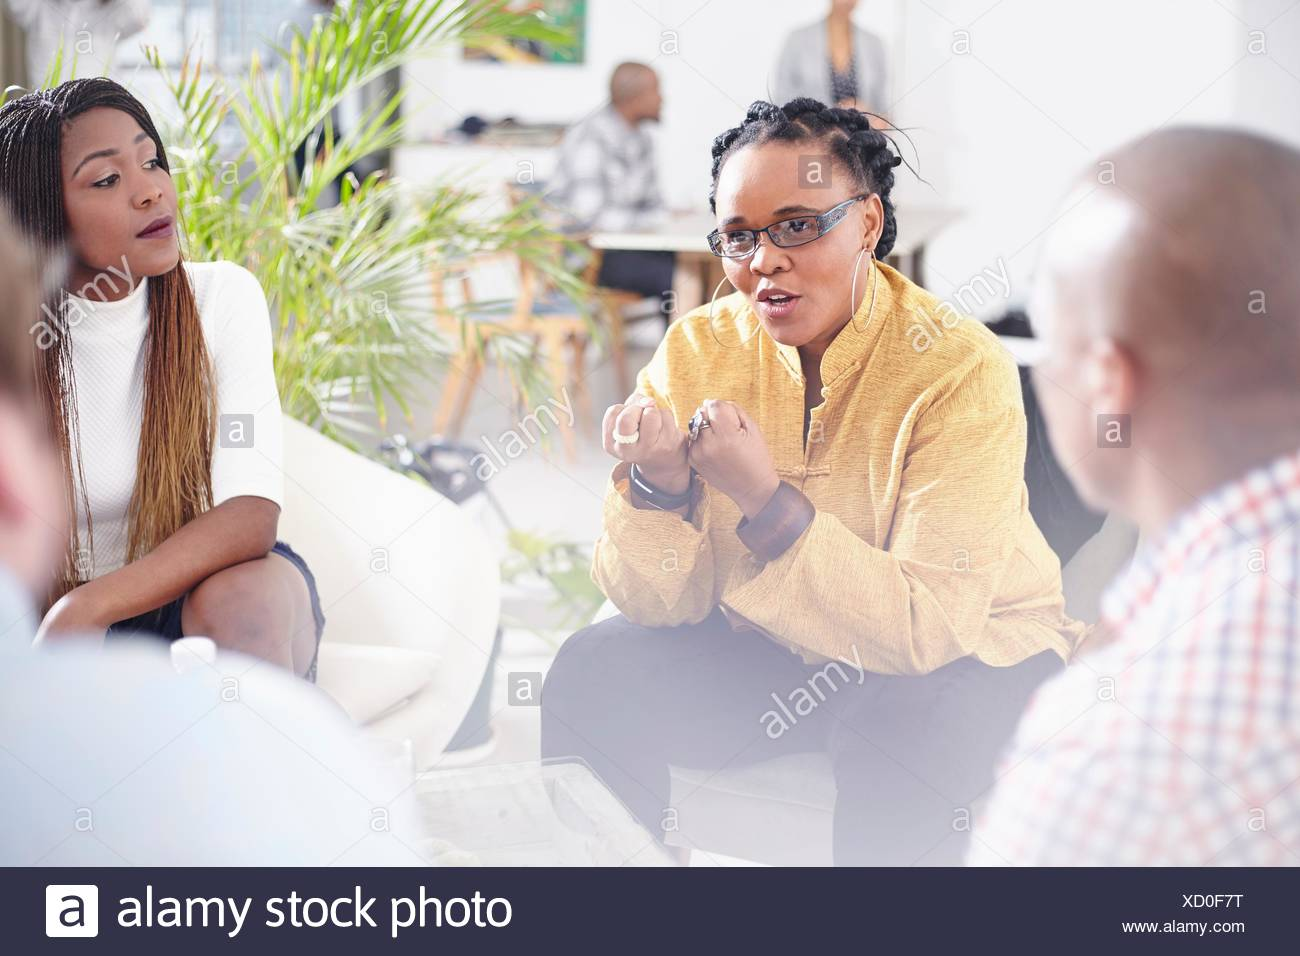 Mature woman talking to colleagues, hand gestures - Stock Image